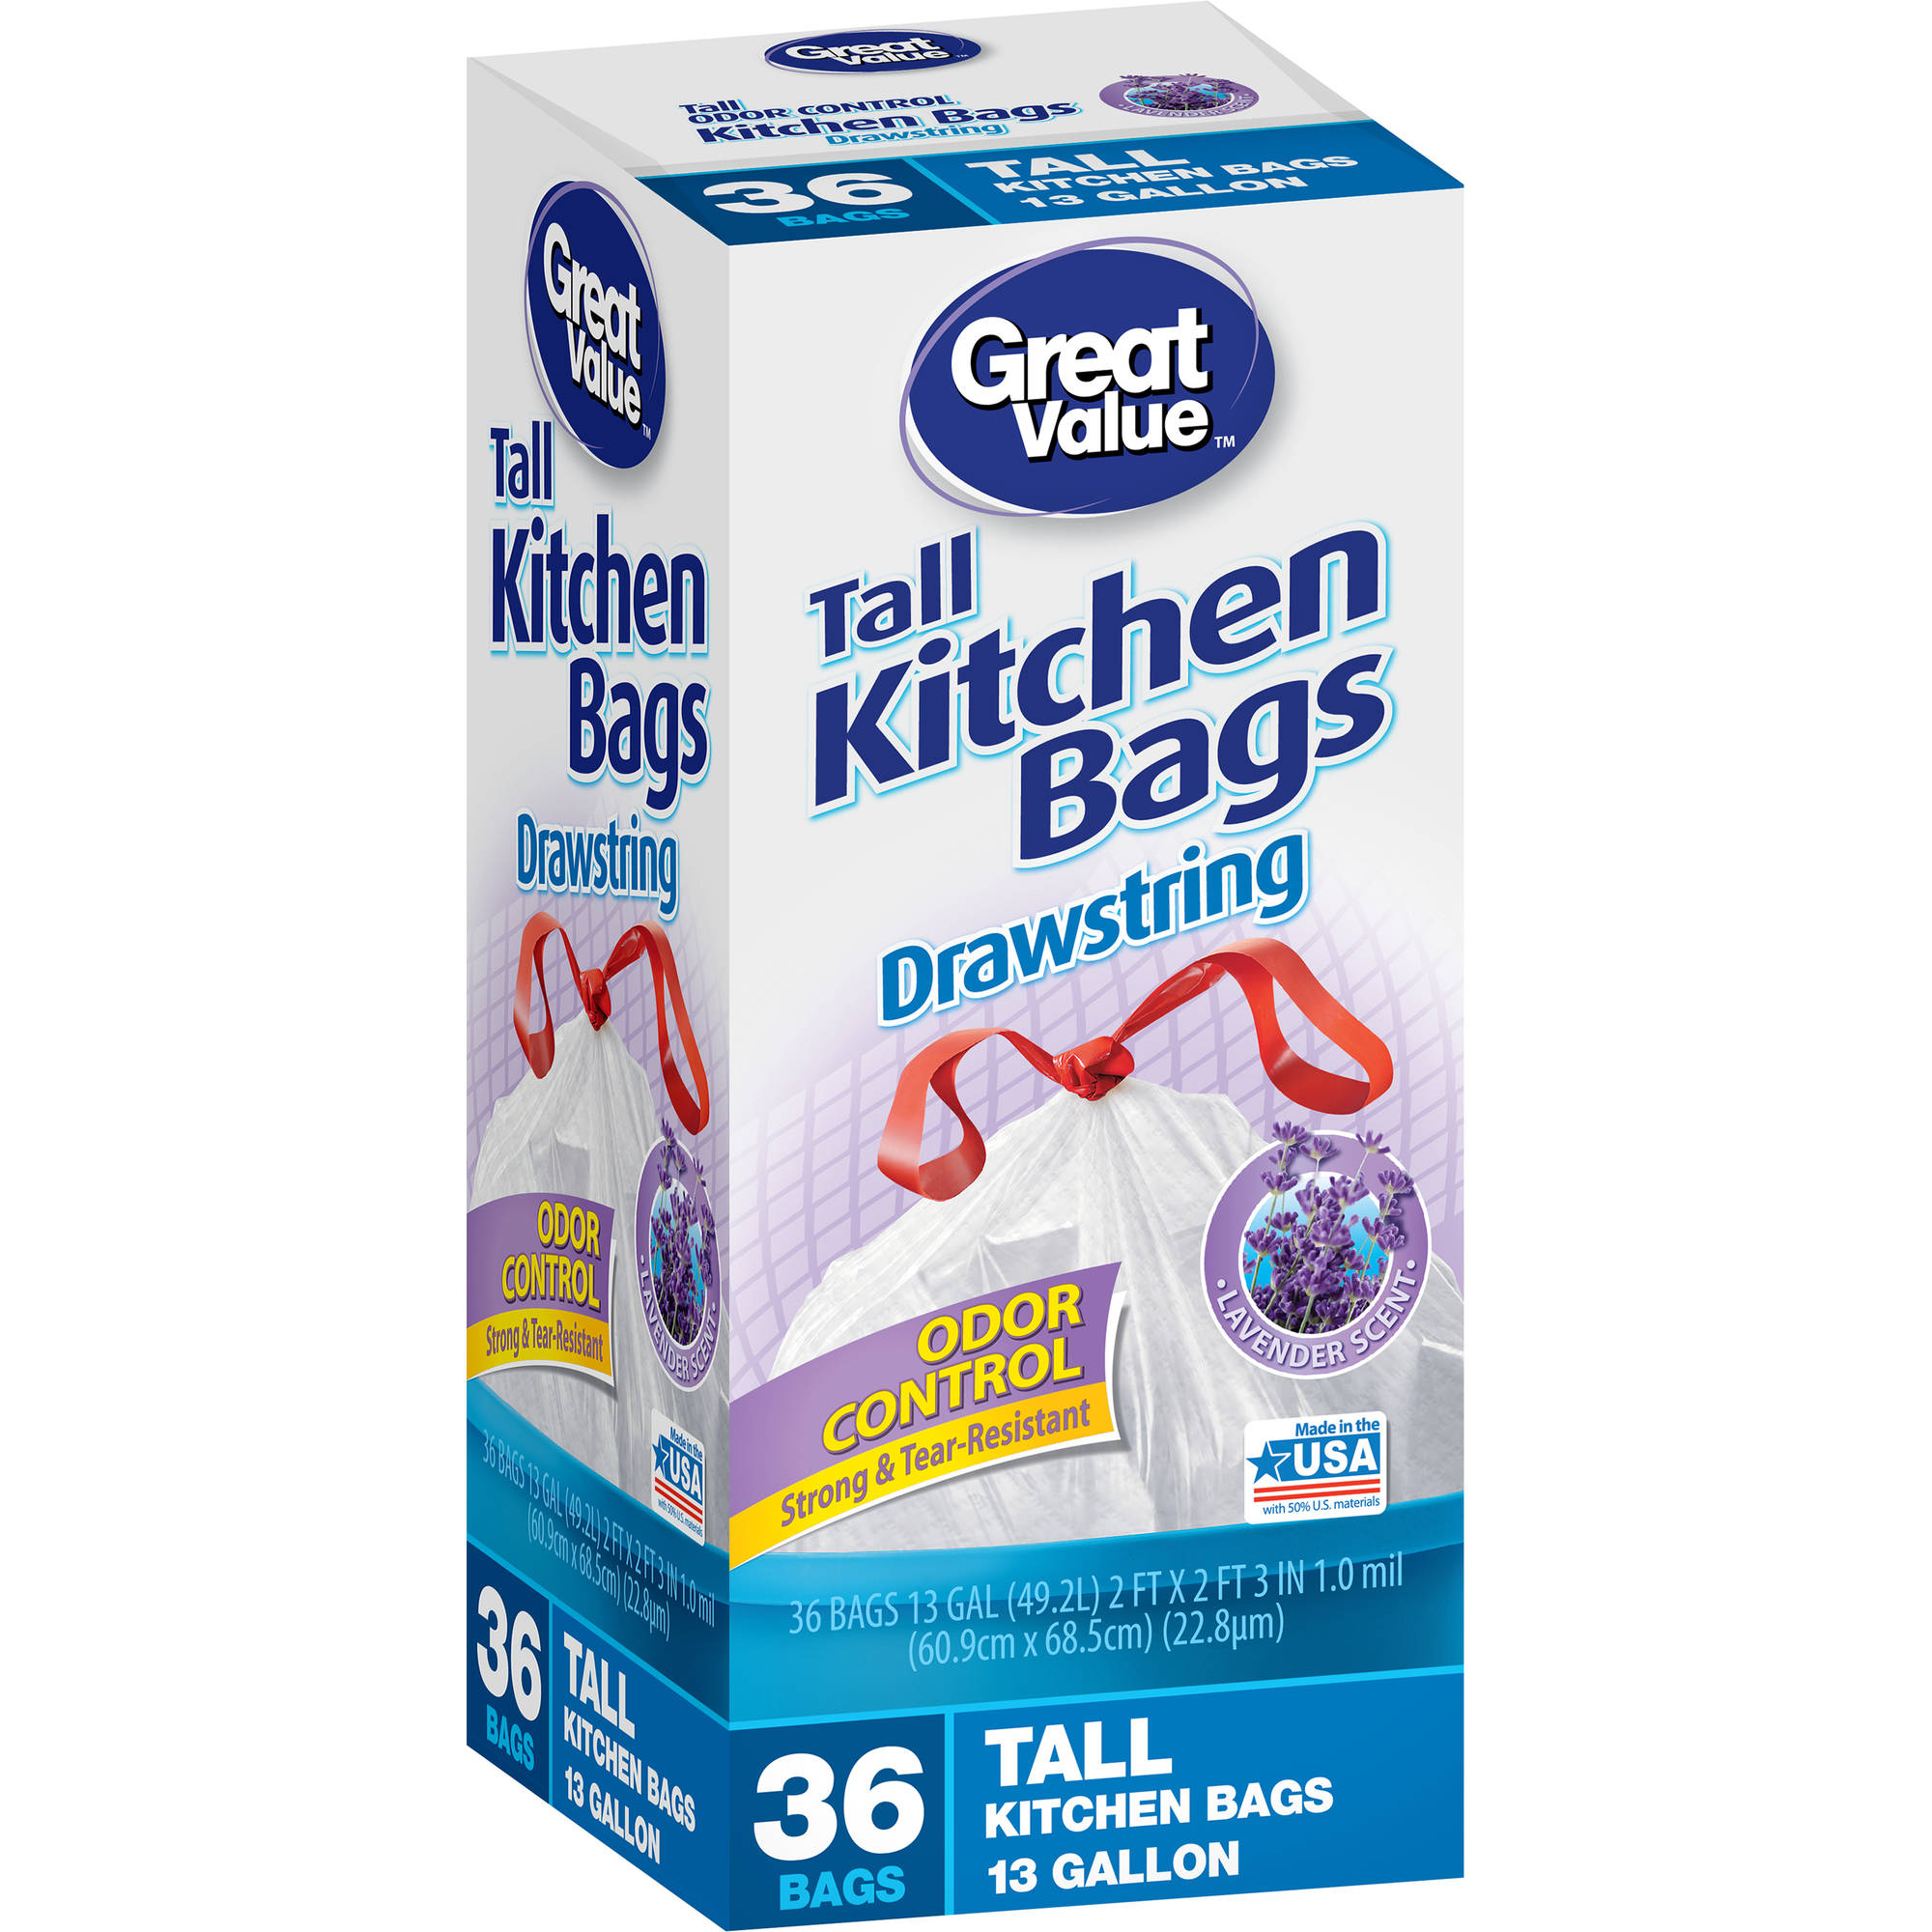 Great Value Lavender Scent Drawstring Tall Kitchen Bags, 13 gallons, 36 count